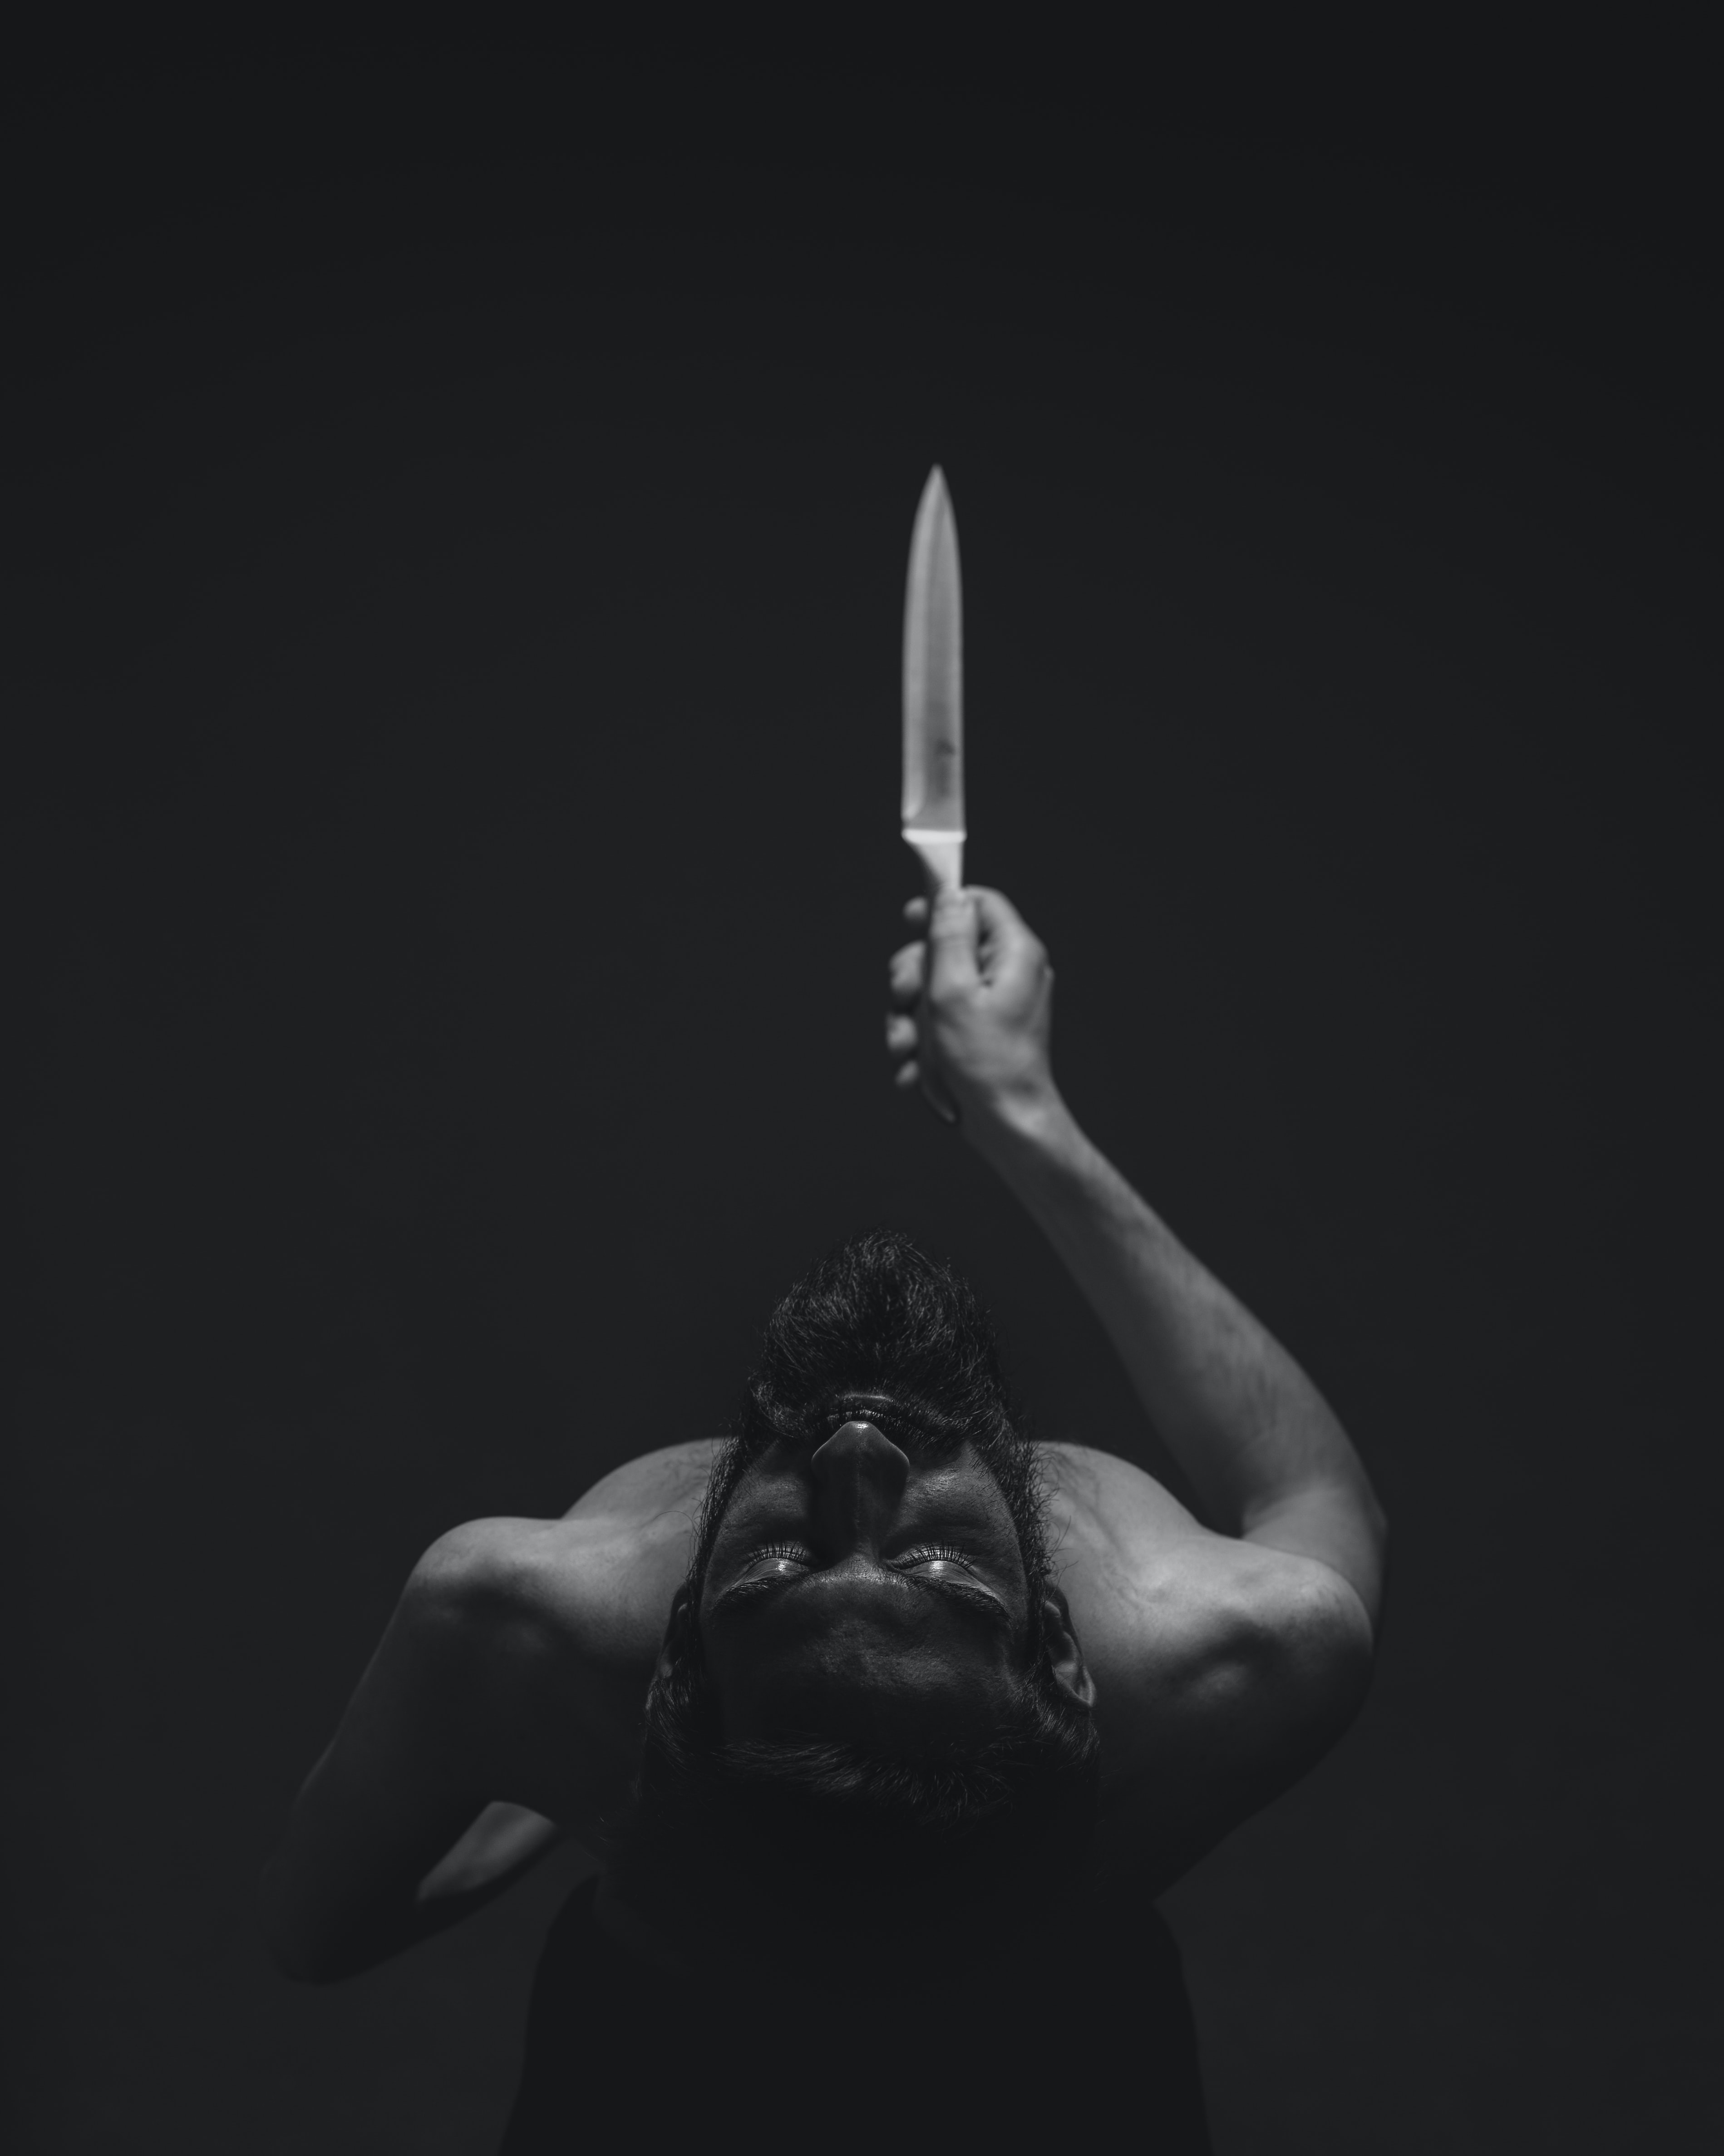 grayscale photography of man holding knife